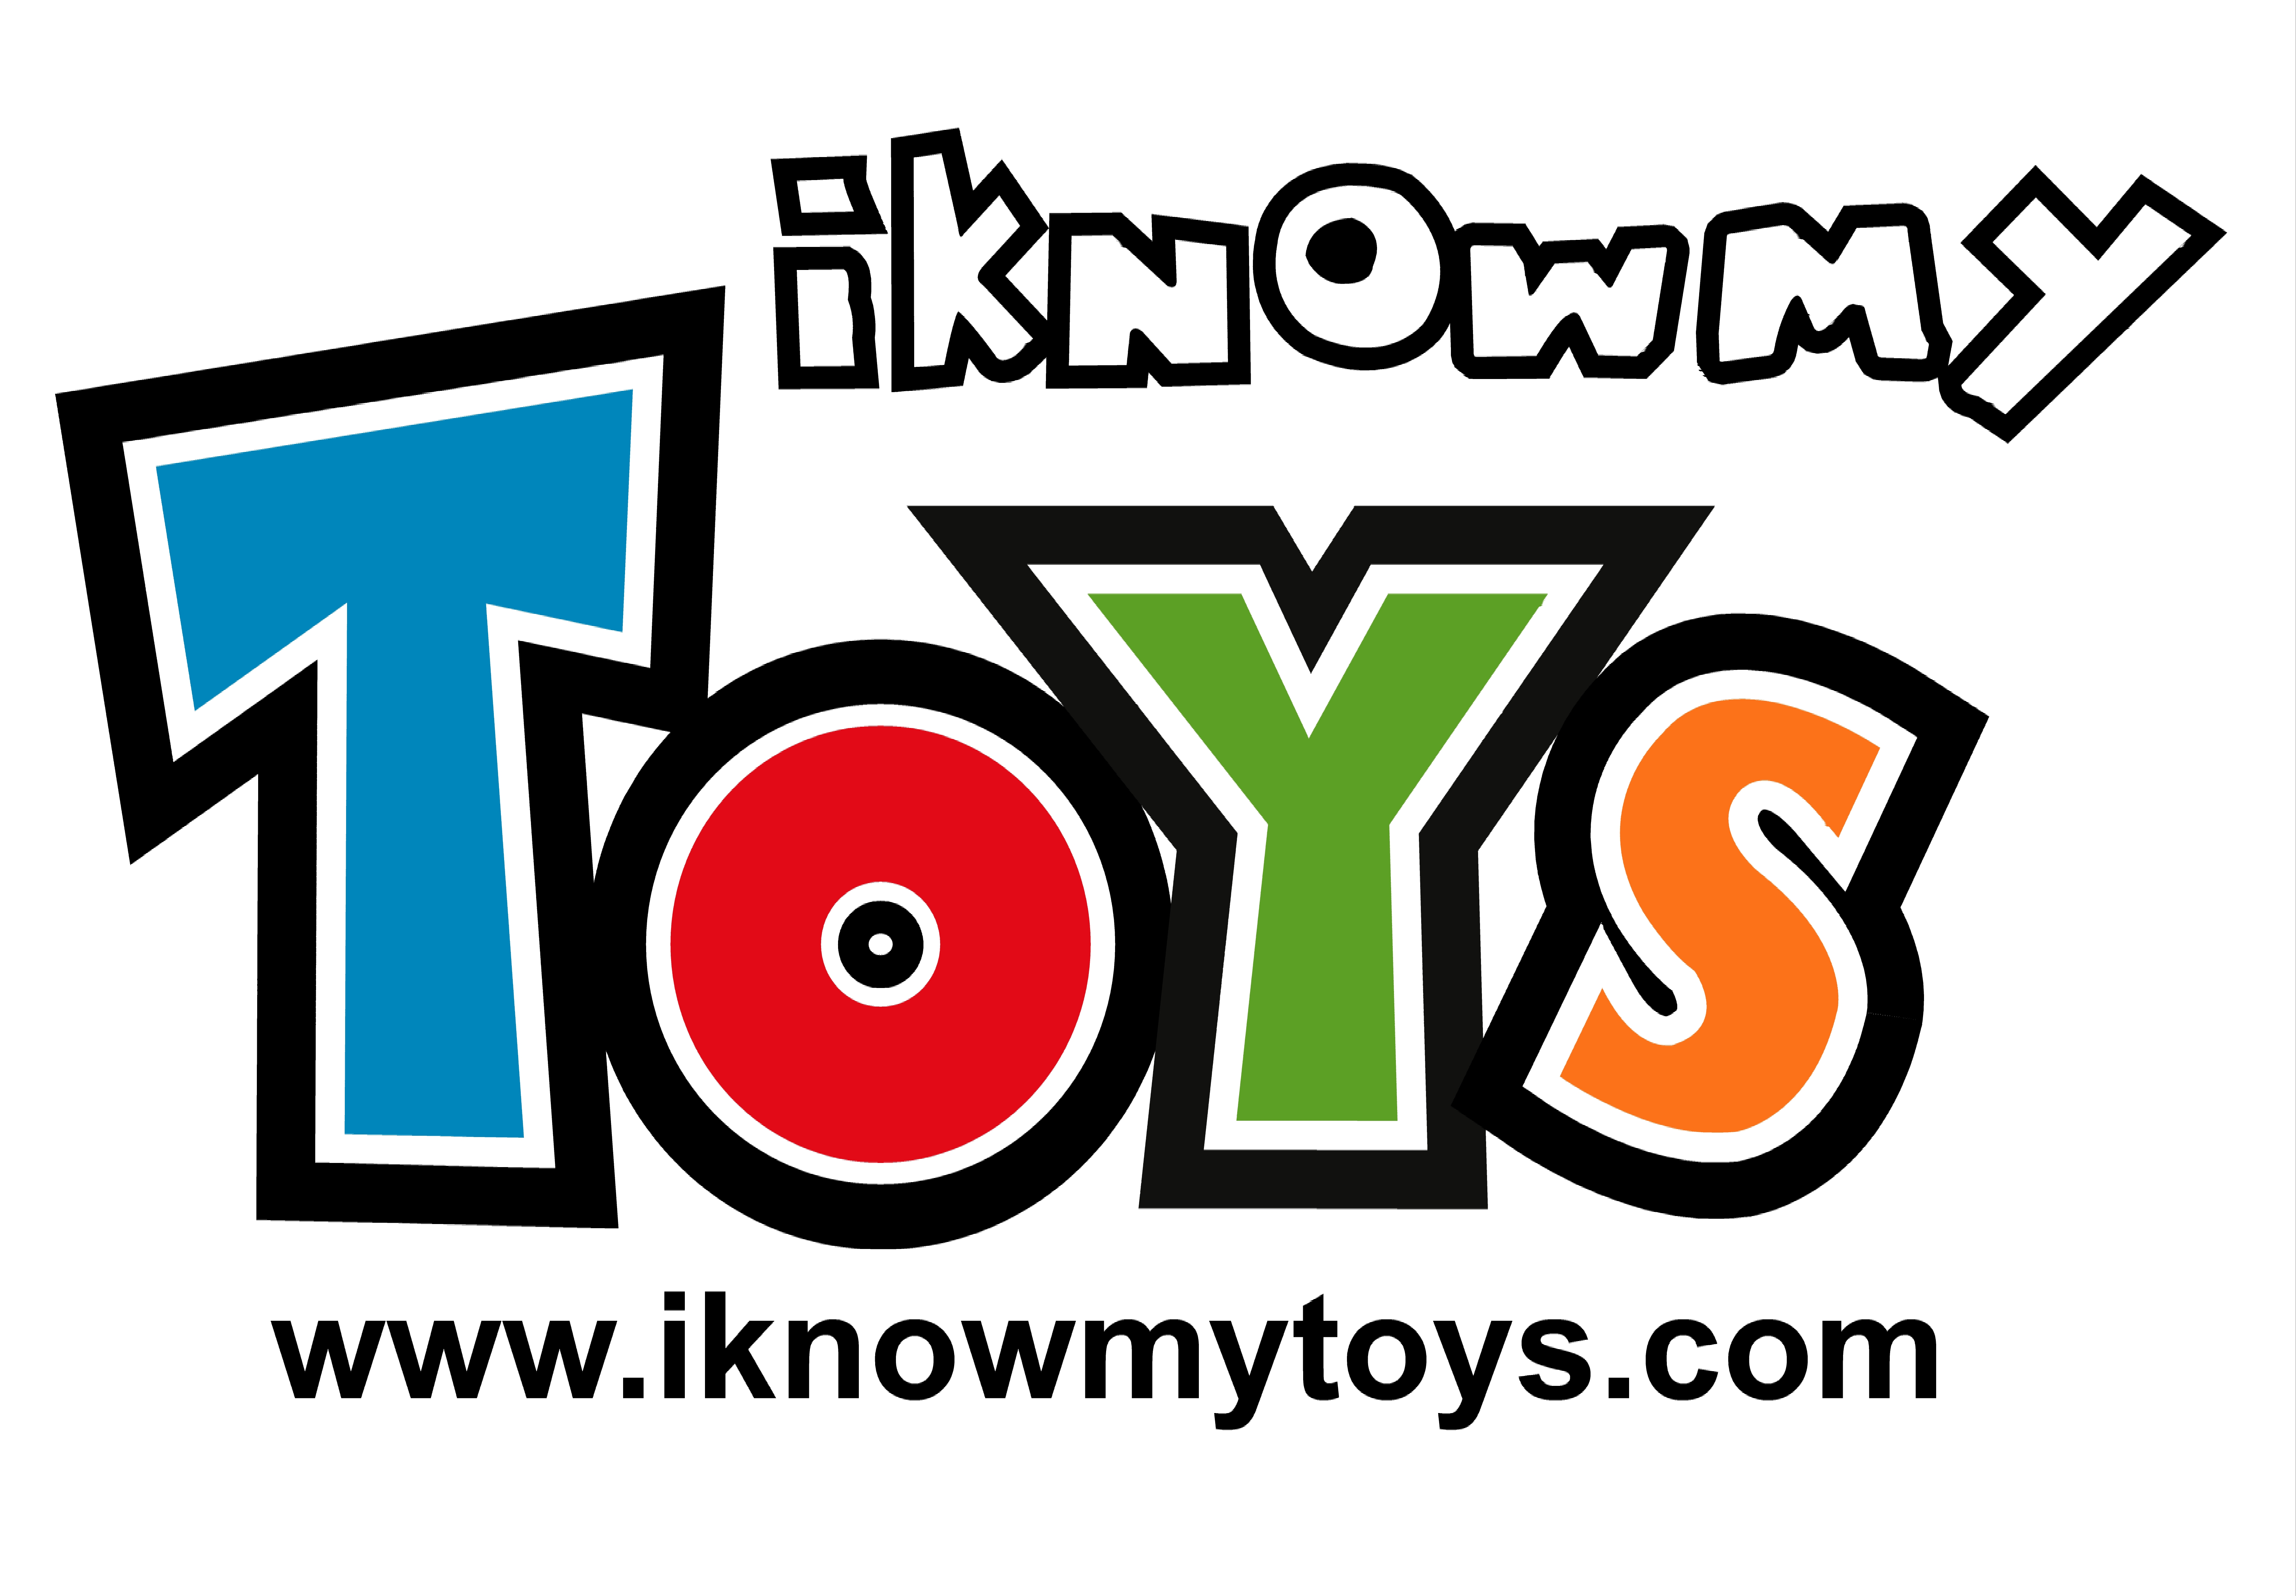 i-know-my-toys-logo-jpeg.jpg